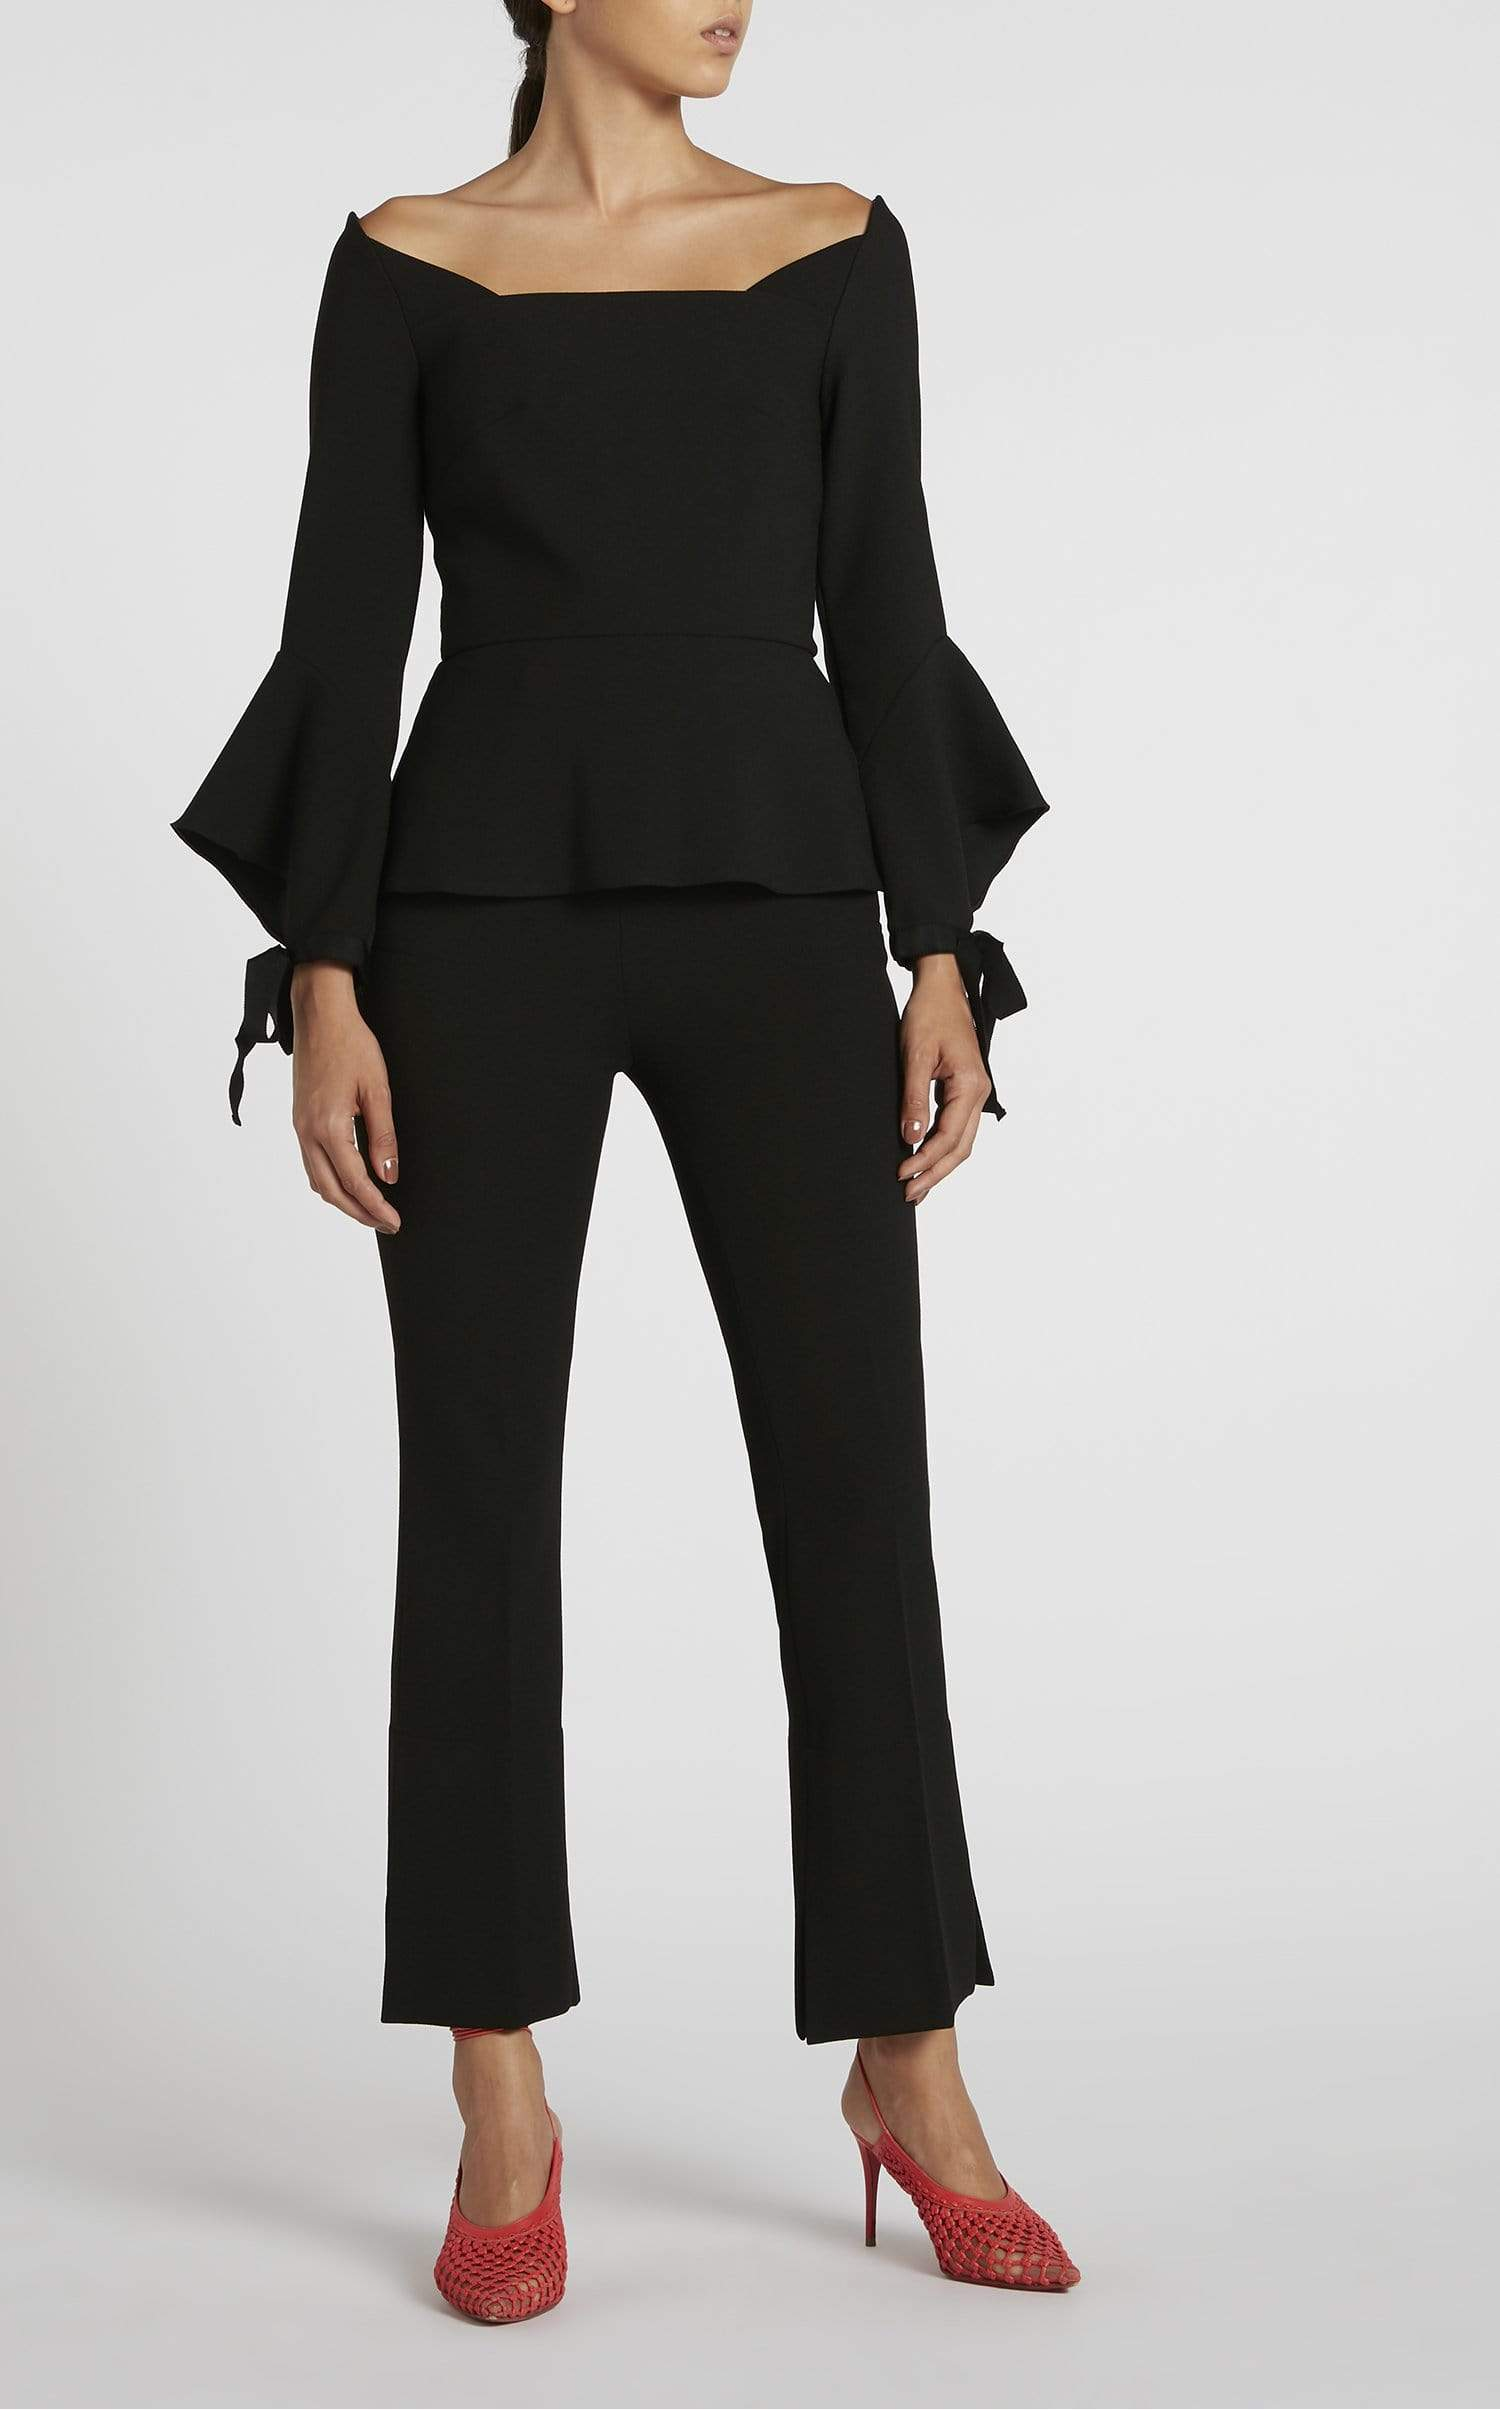 Goswell Trouser In Black from Roland Mouret